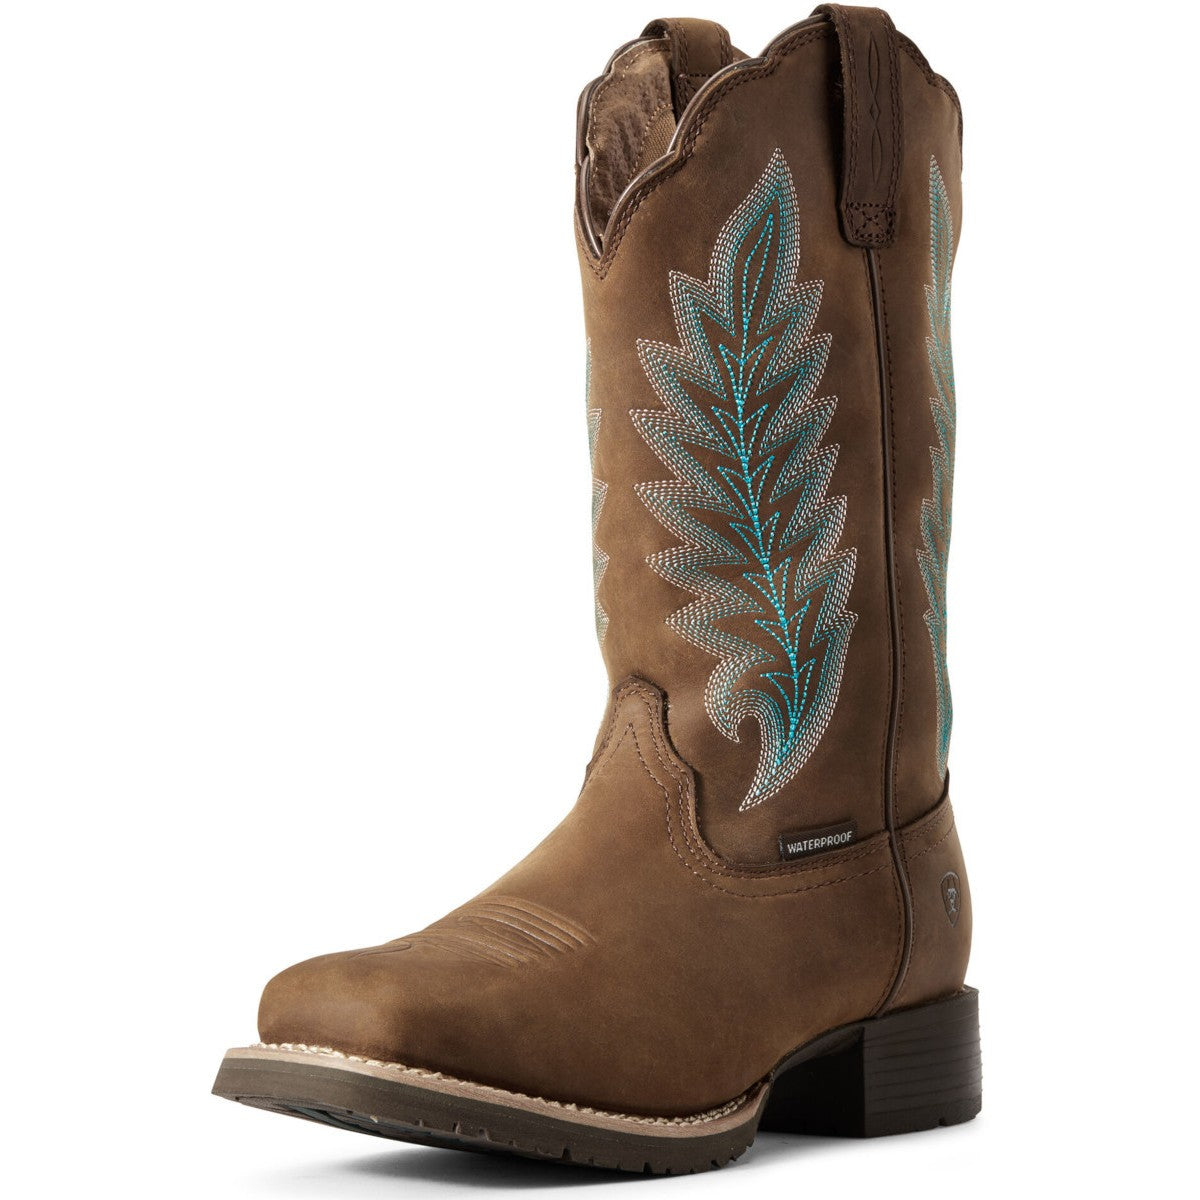 Ariat Women's Hybrid Rancher Waterproof 400g Insulated Cowgirl Boots